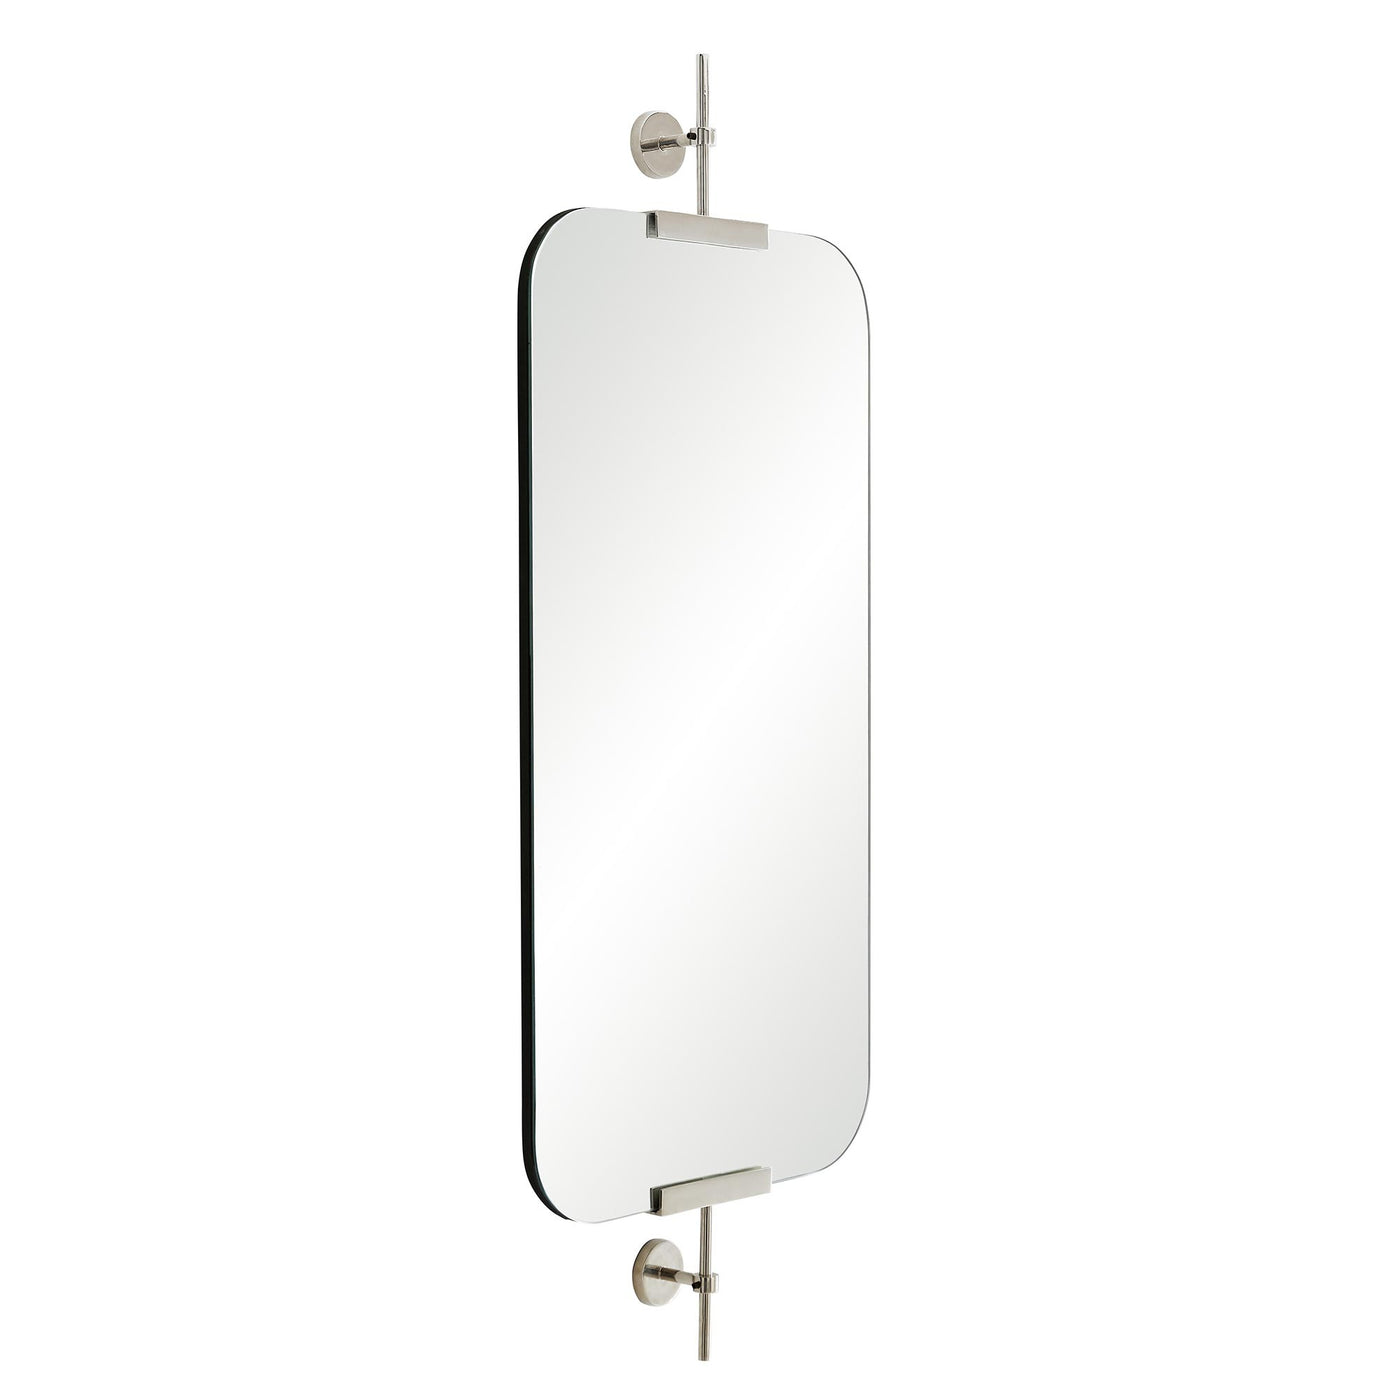 arteriors home madden mirror polished nickel side